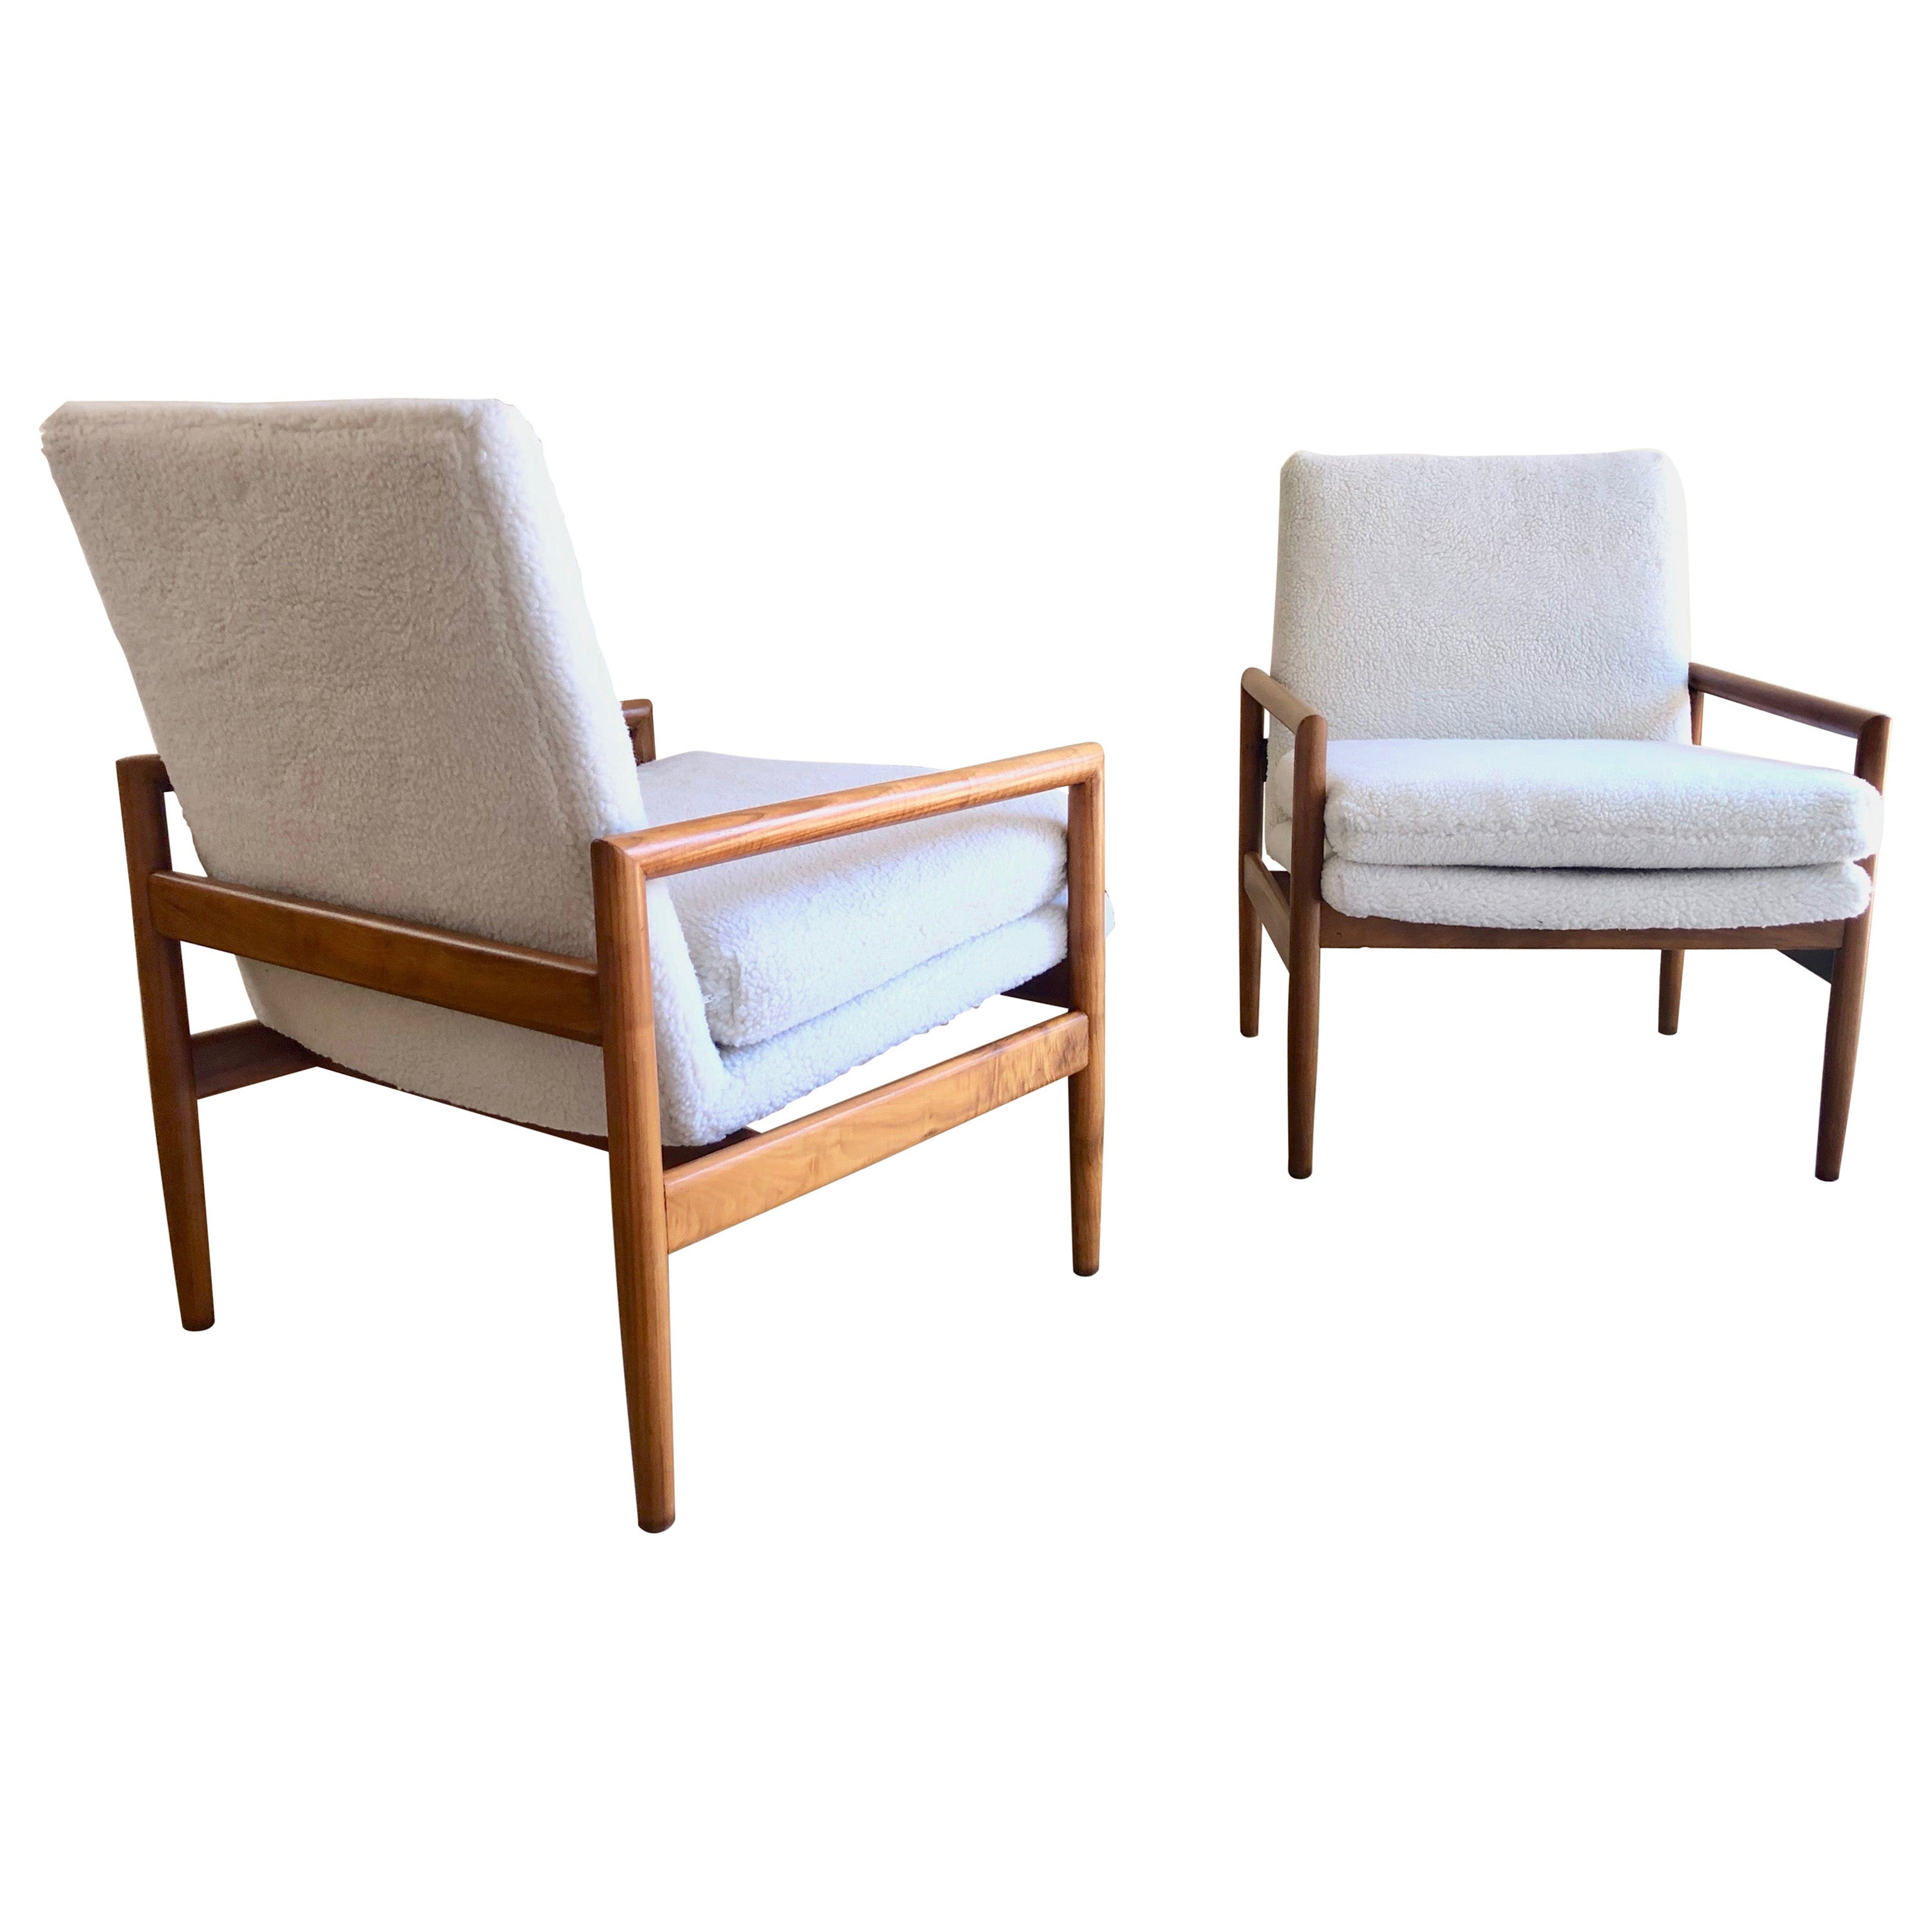 Milo Baughman for Thayer Coggin Lounge Chairs